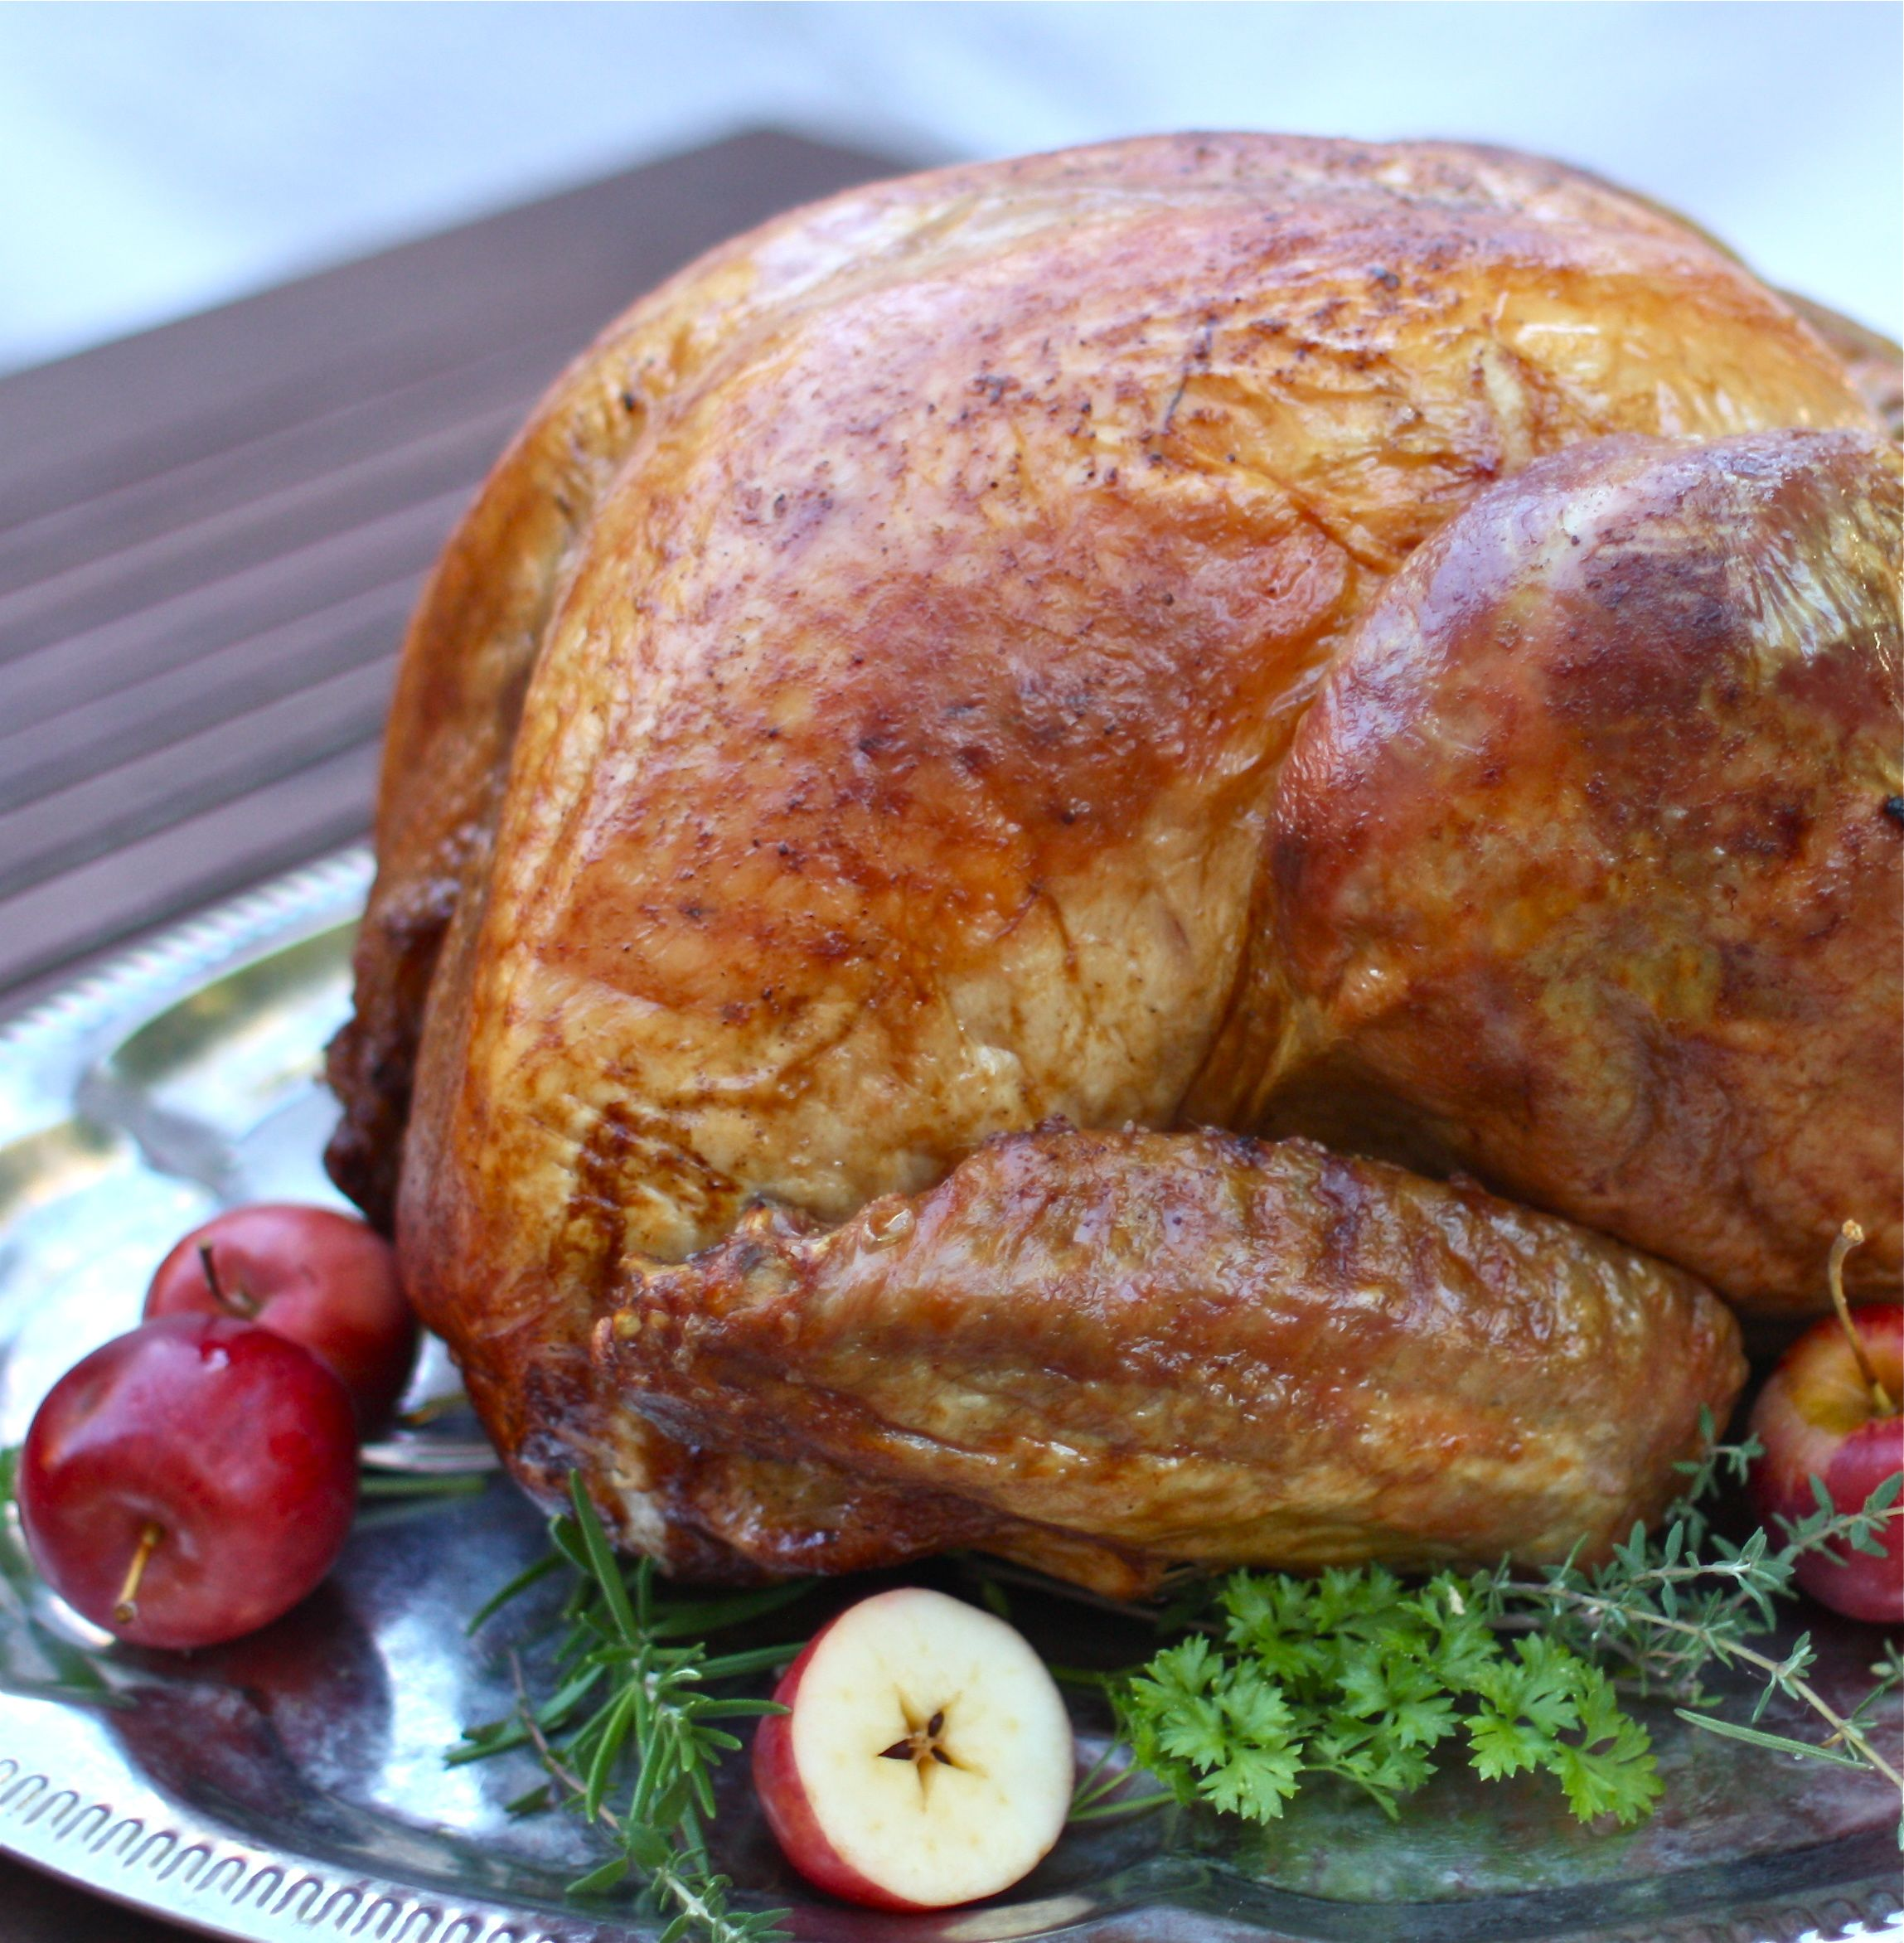 The Best Way To Roast A Turkey The Simple Way